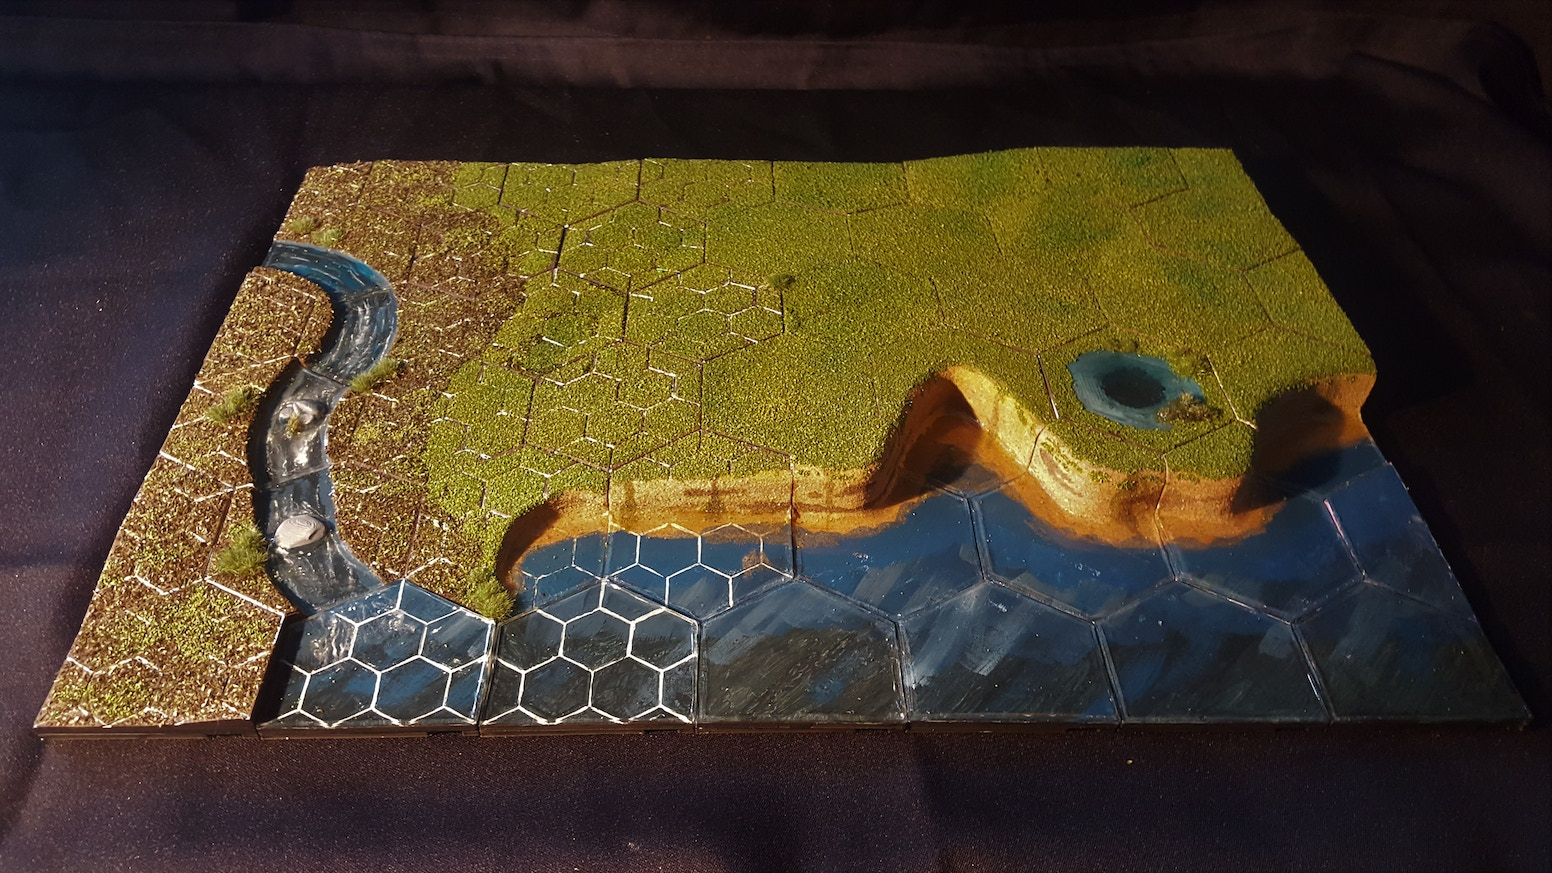 The HexT 3D printable Modular Terrain tile system, slopes, grassland, streams & rocks.